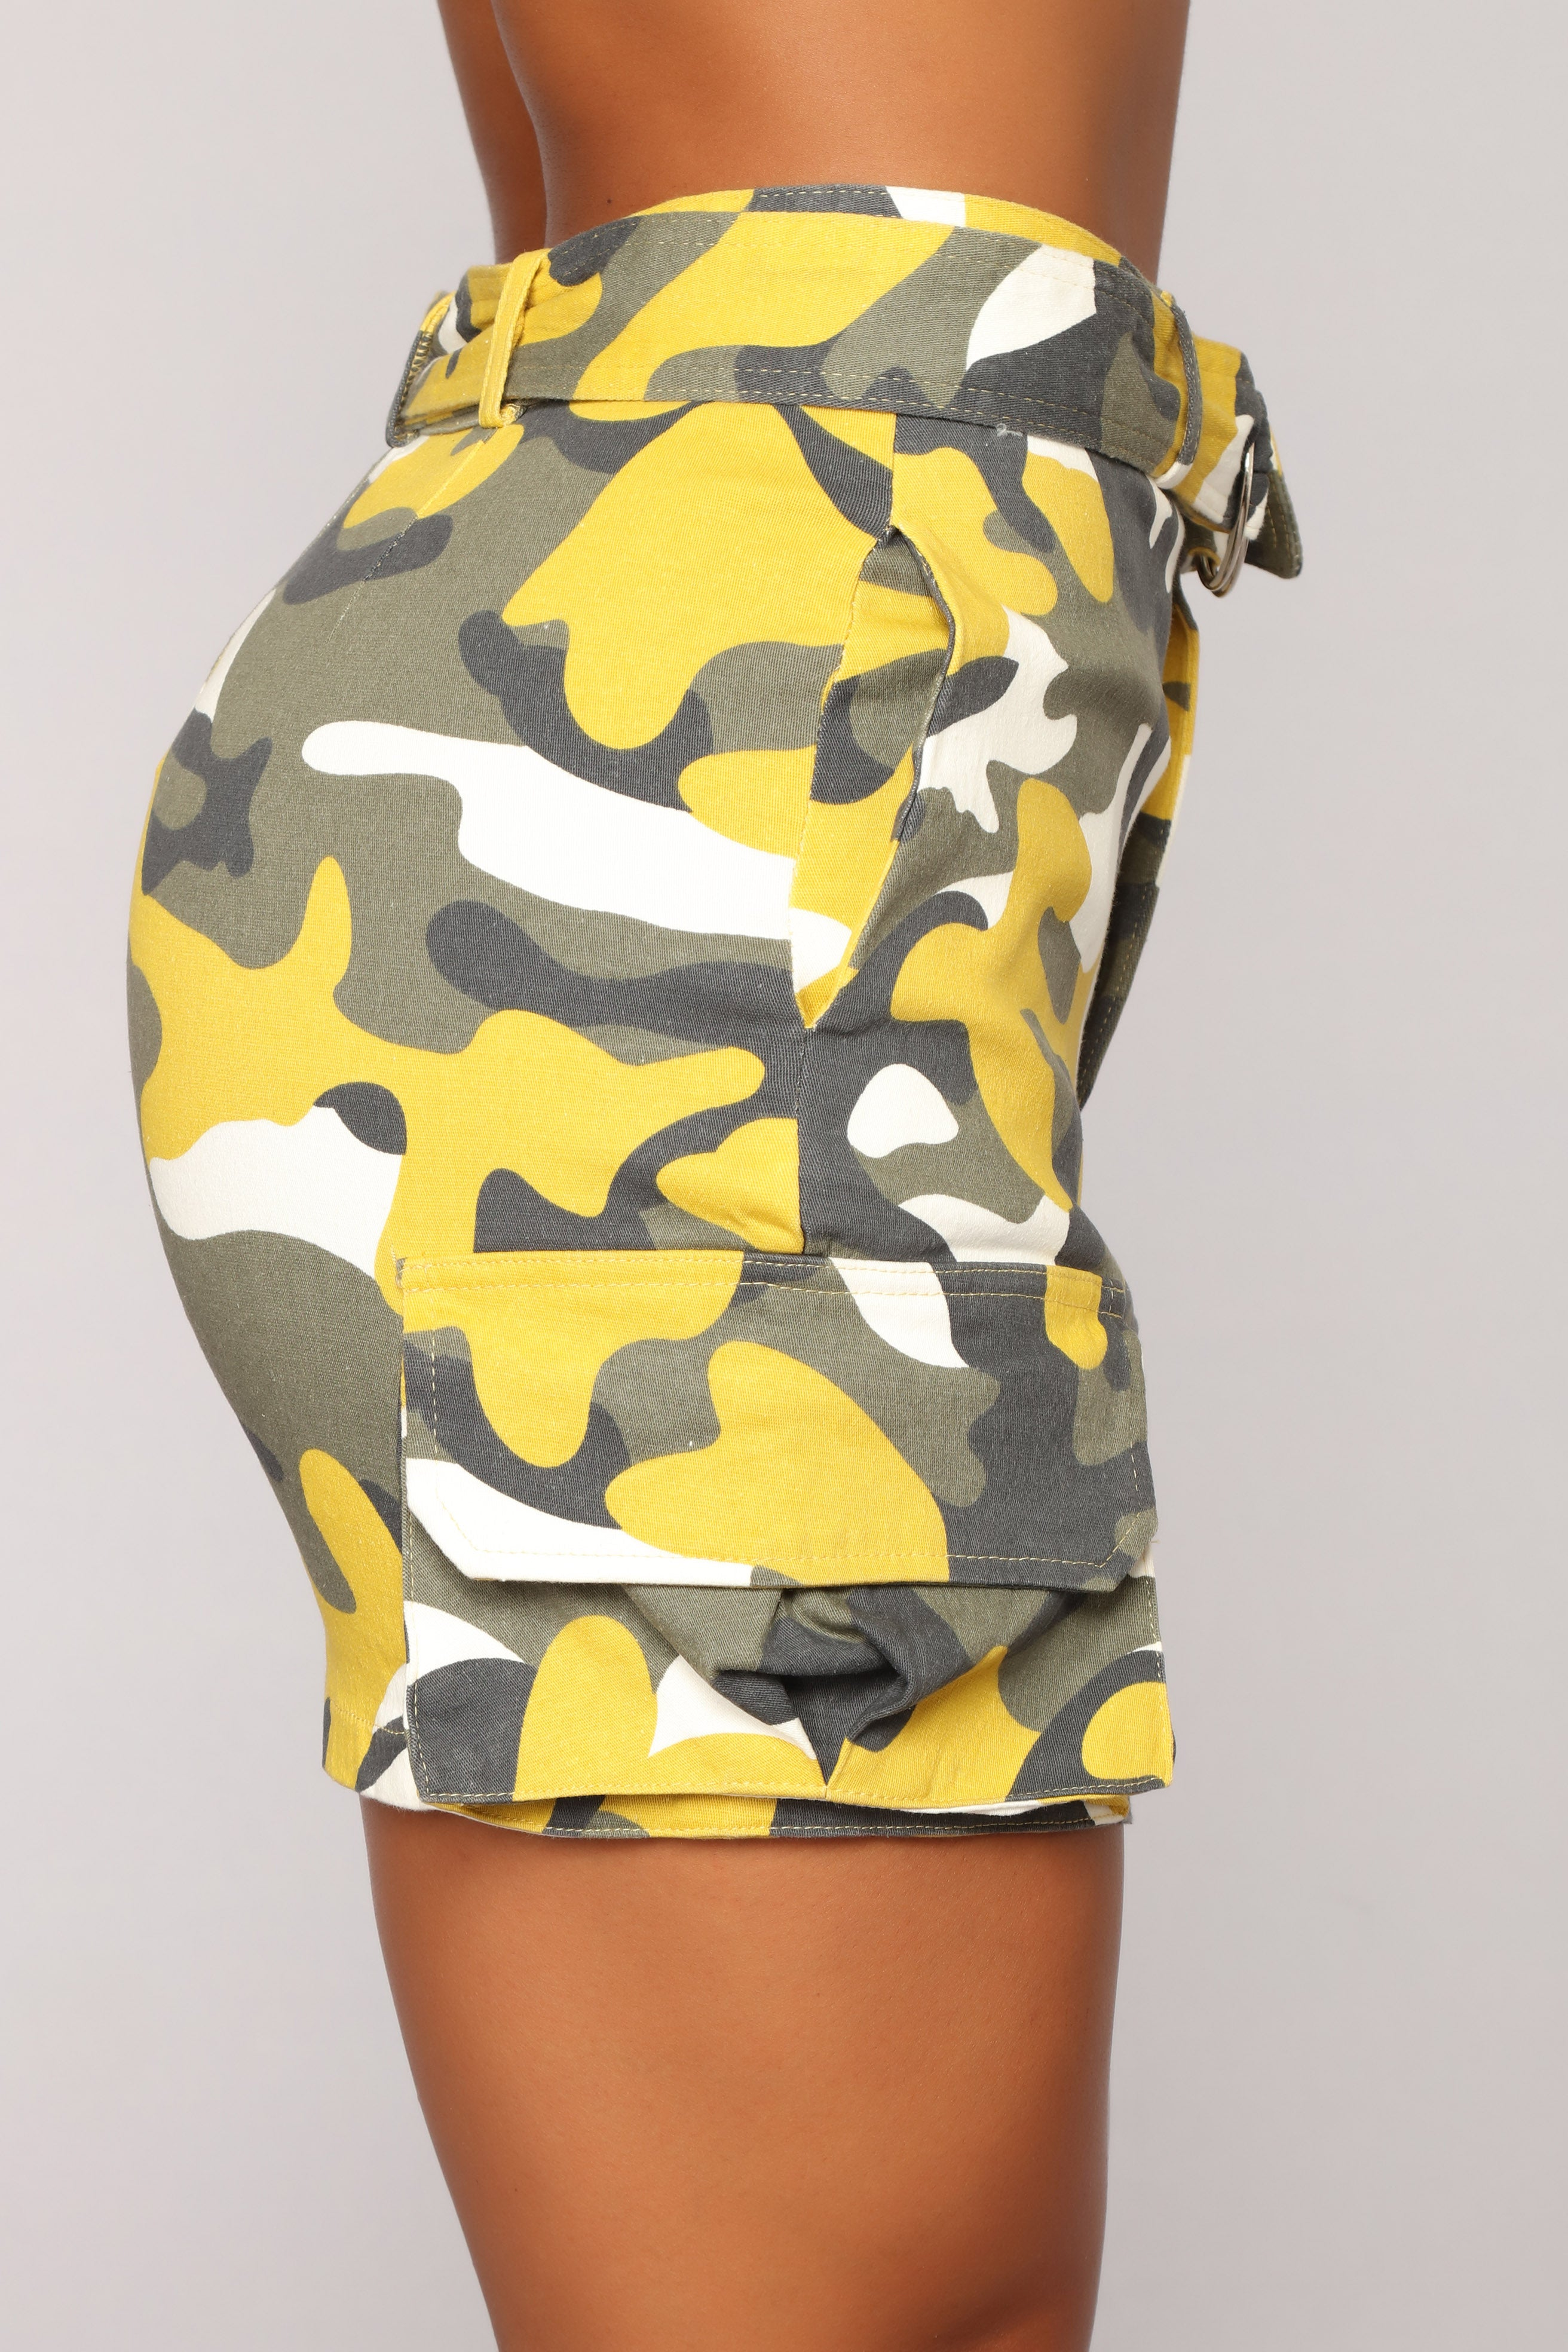 1c77ca2ebbb1e Survivor Camo Skirt - Yellow